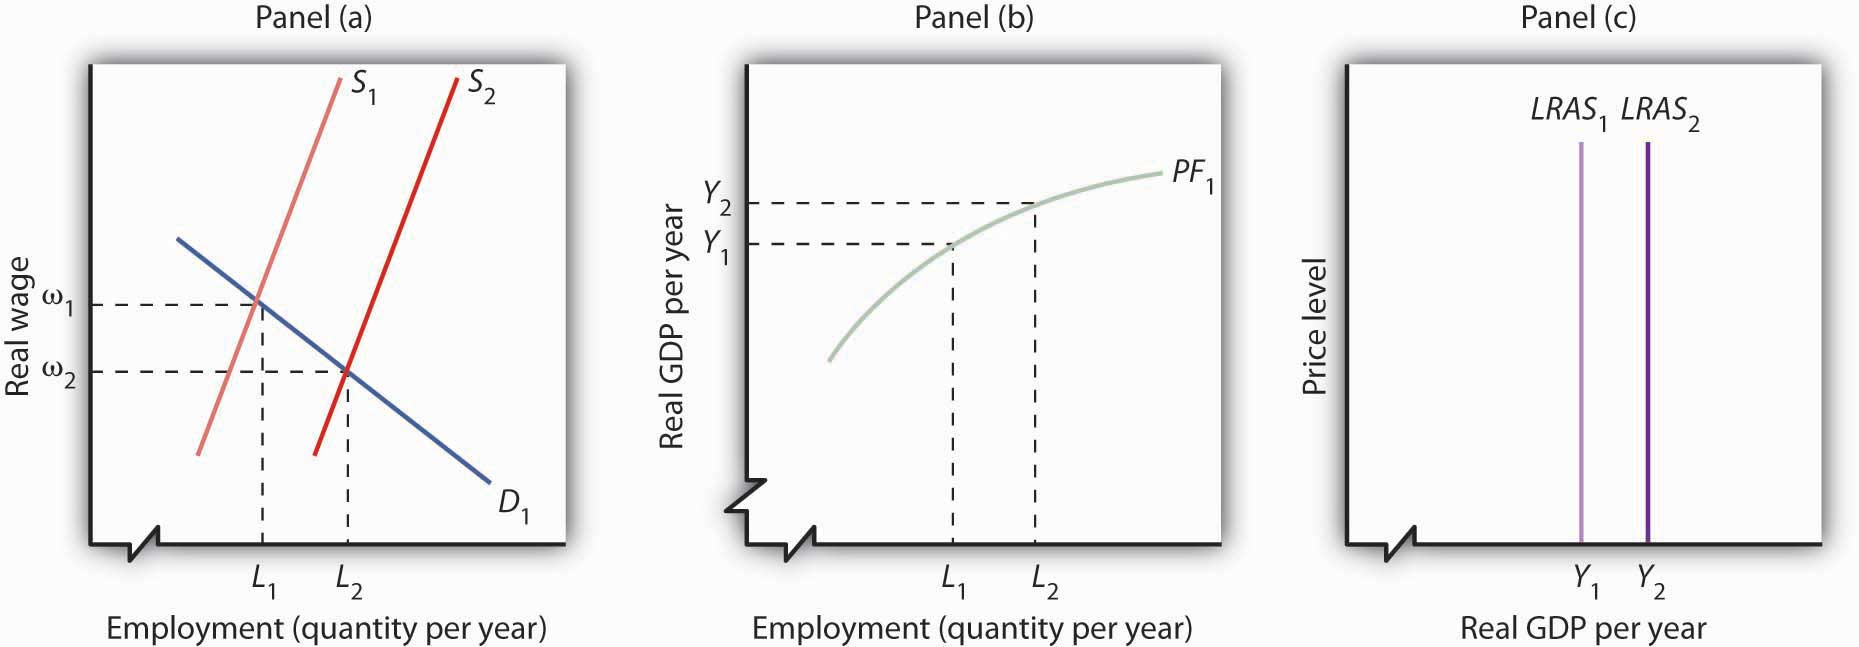 An Increase In The Supply Of Labor Shifts The Supply Curve In Panel (a) To  S 2, And The Natural Level Of Employment Rises To L 2 The Real Wage Falls  To